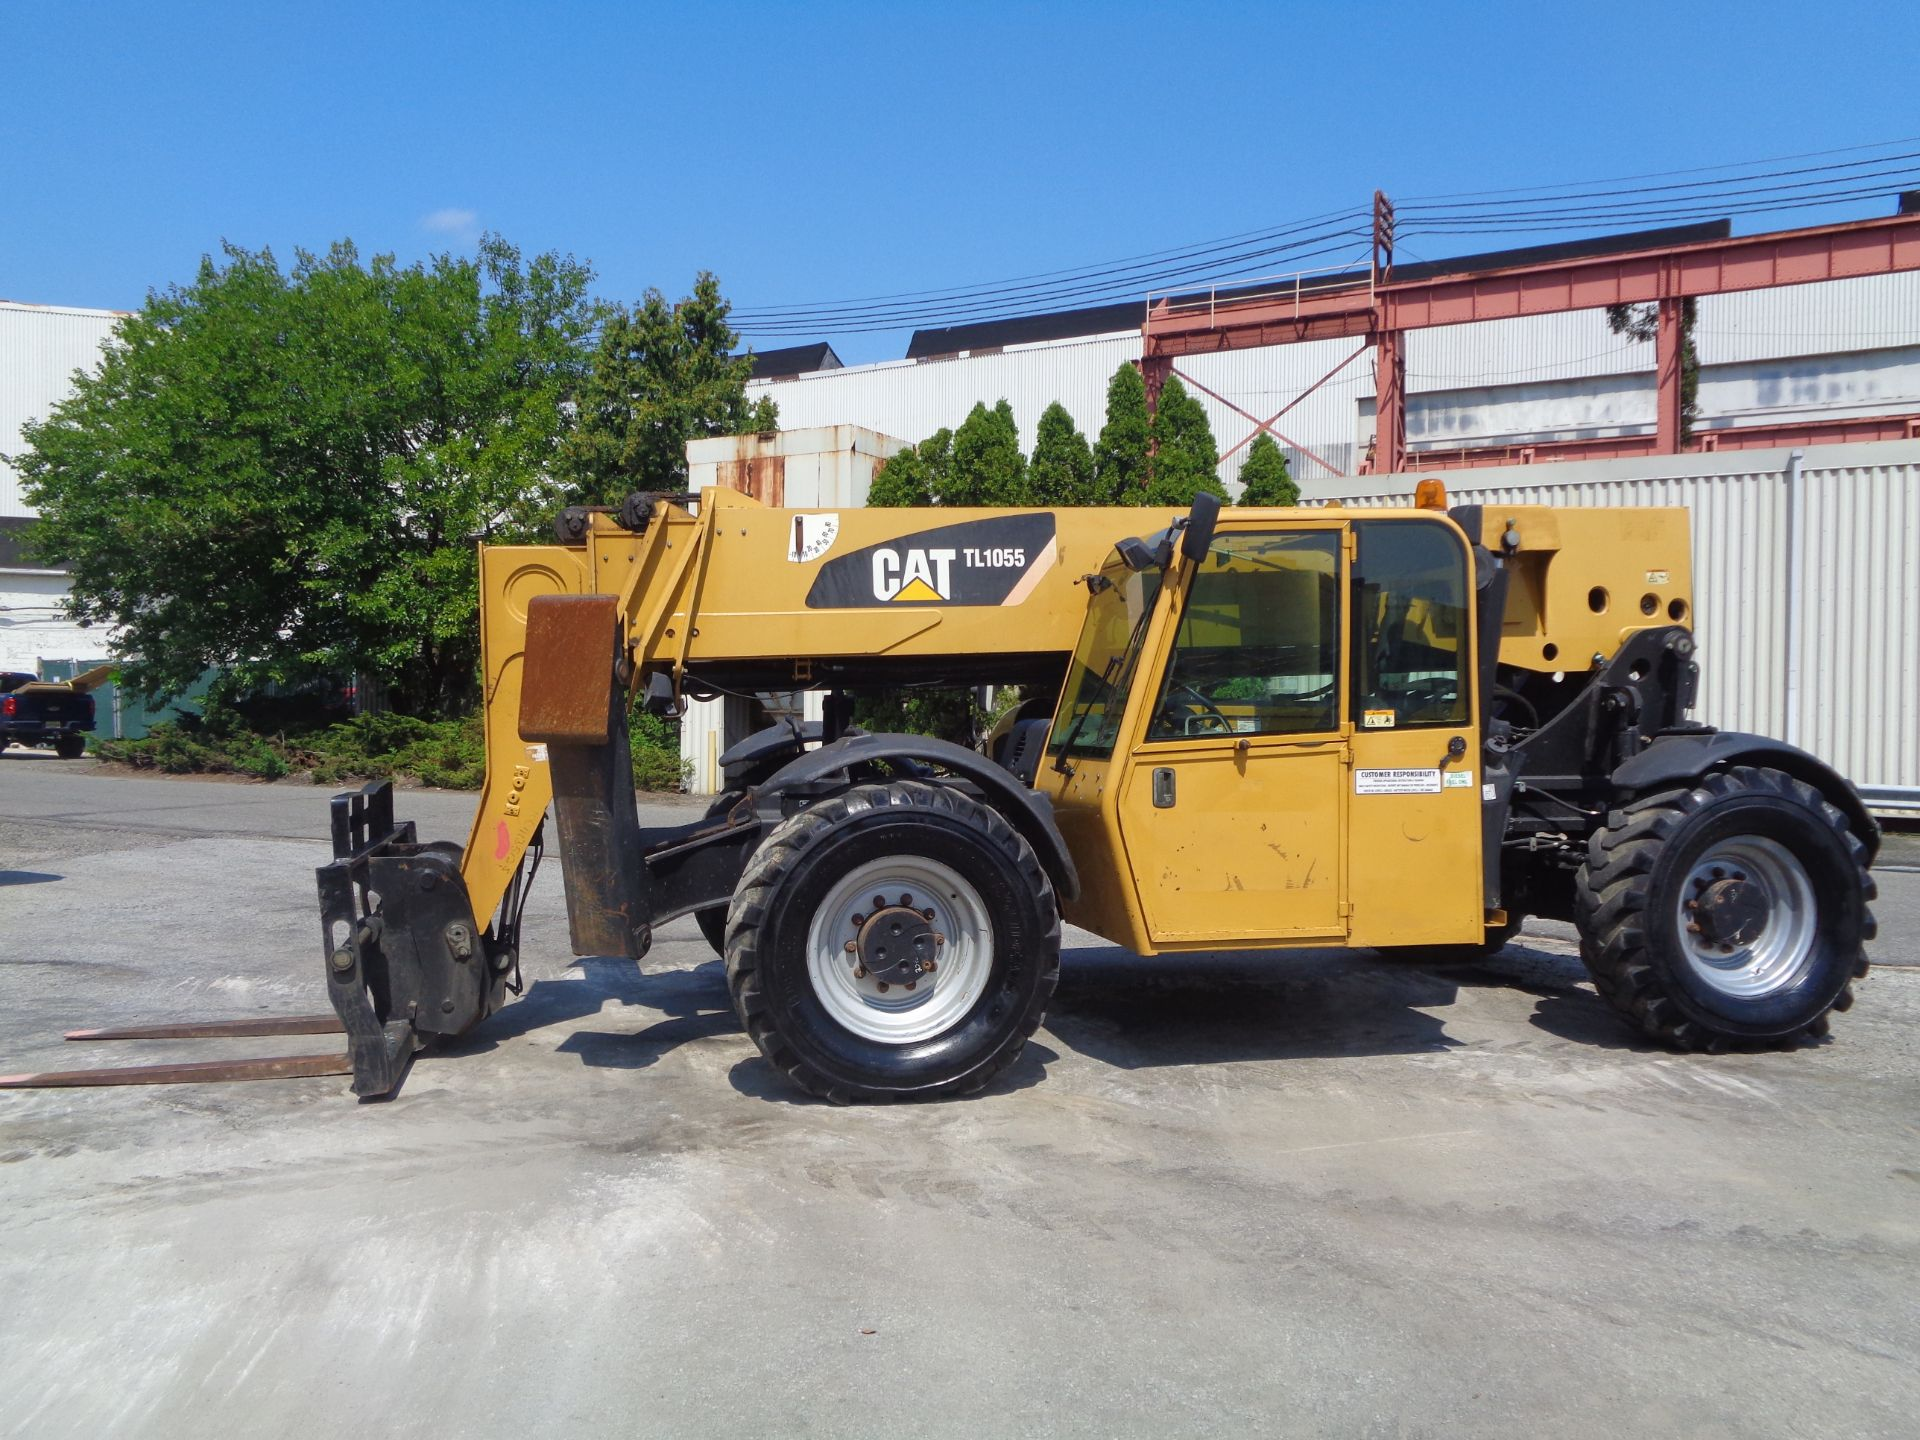 Lot 162 - Caterpillar TL1055 10,000lbs 55ft Telescopic Forklift